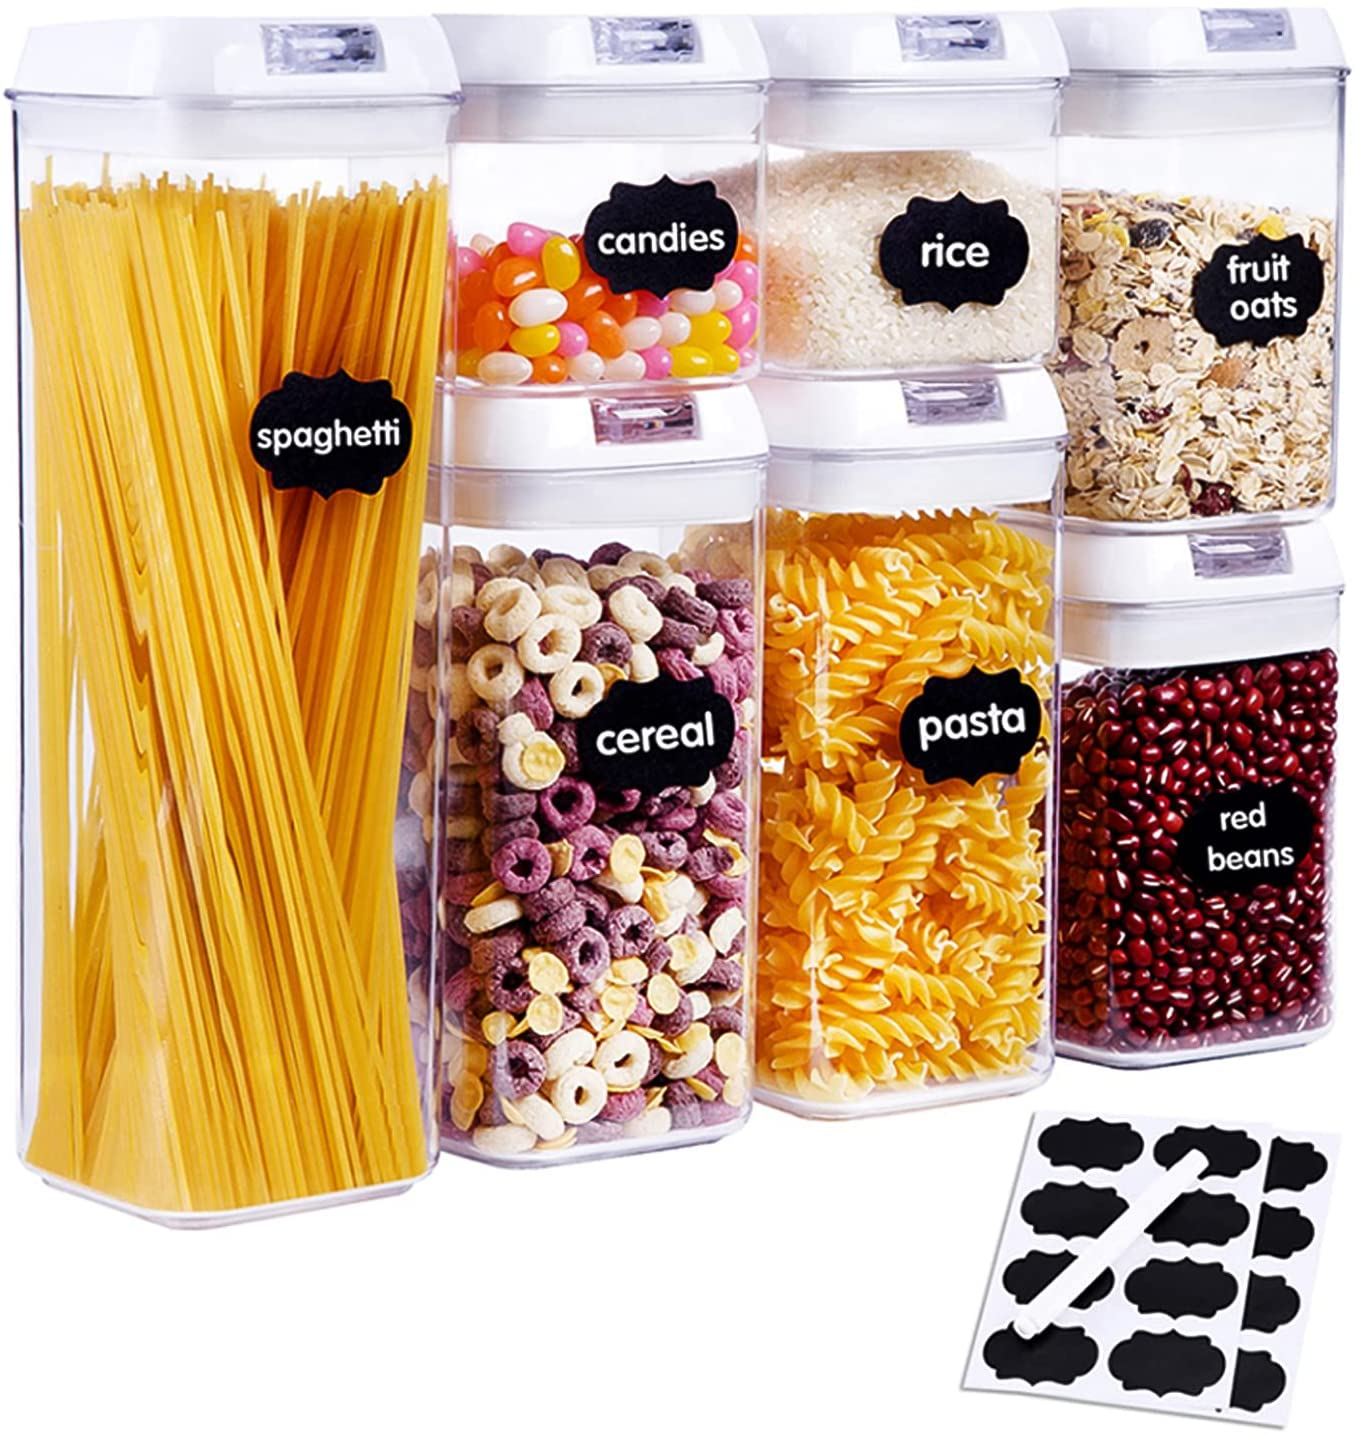 KITCHEN HERO 7 Pieces Airtight Food Storage Containers for Food | BPA Free Cereal & Dry Food Storage Containers with Lids | Cereal Storage Containers Airtight | Pantry Organization Canisters